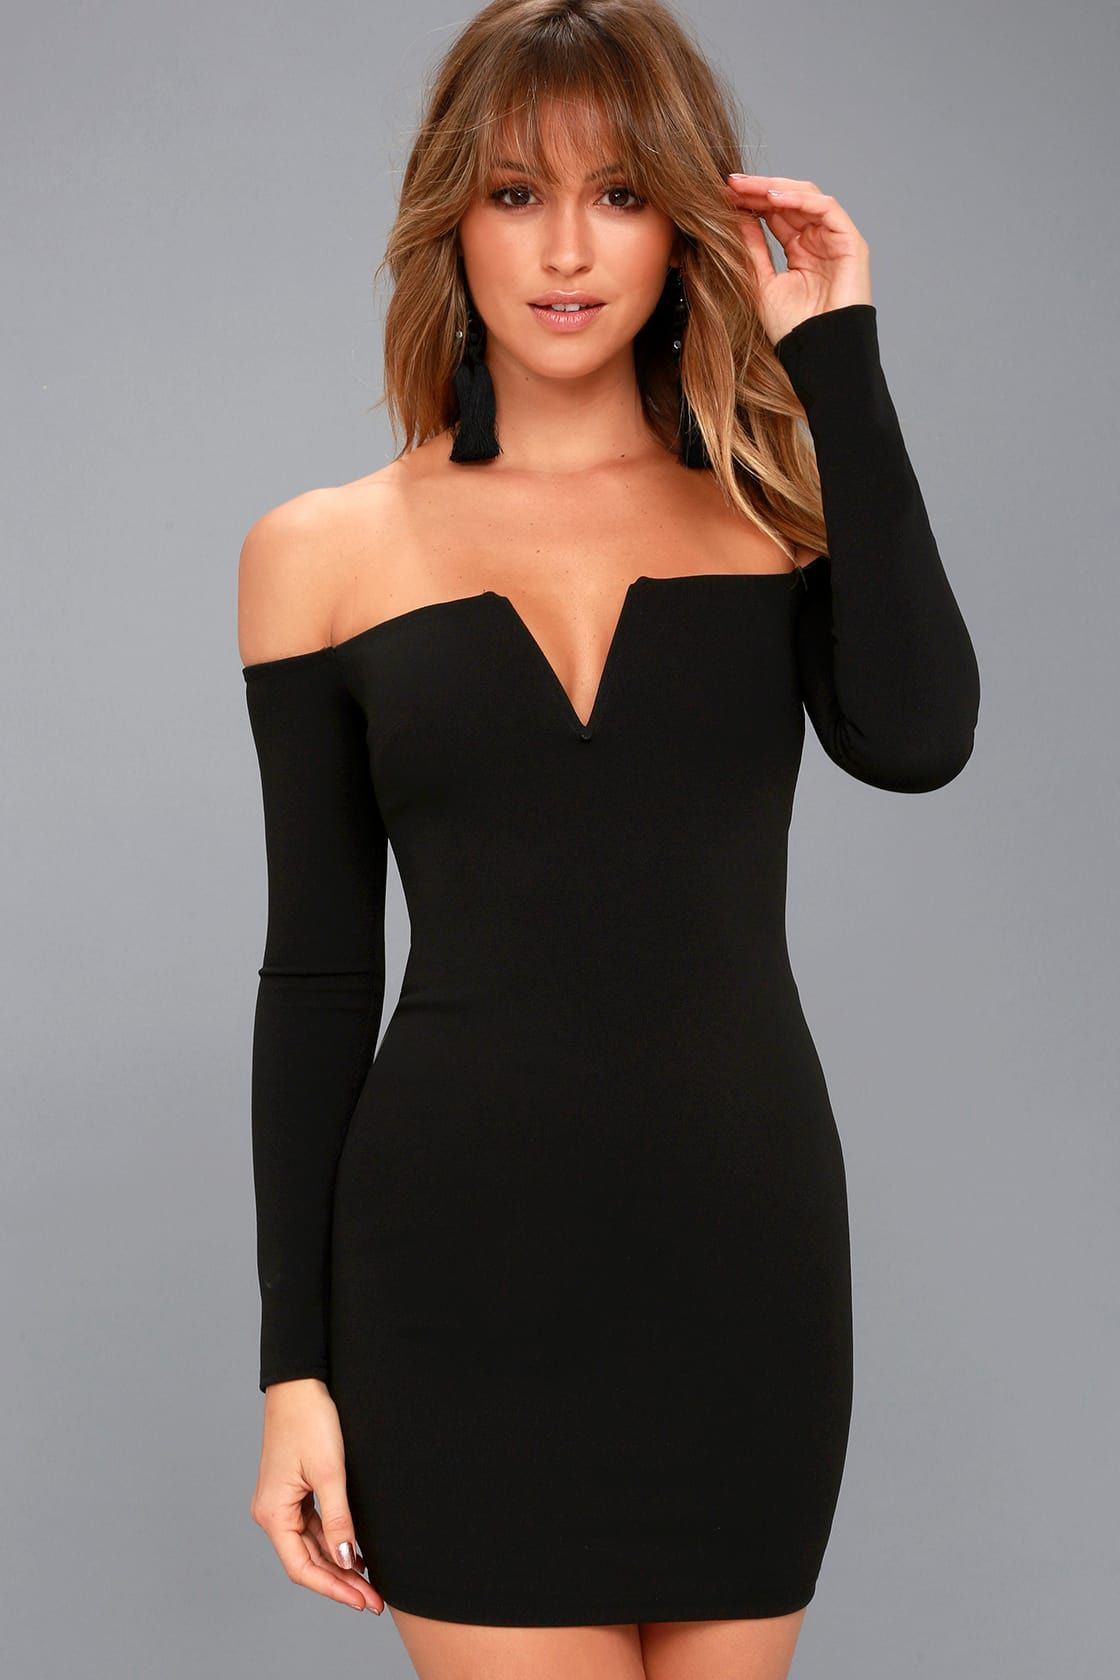 d955411c1c77 Lulus | Over the Swoon Black Off-the-Shoulder Bodycon Dress | Size ...